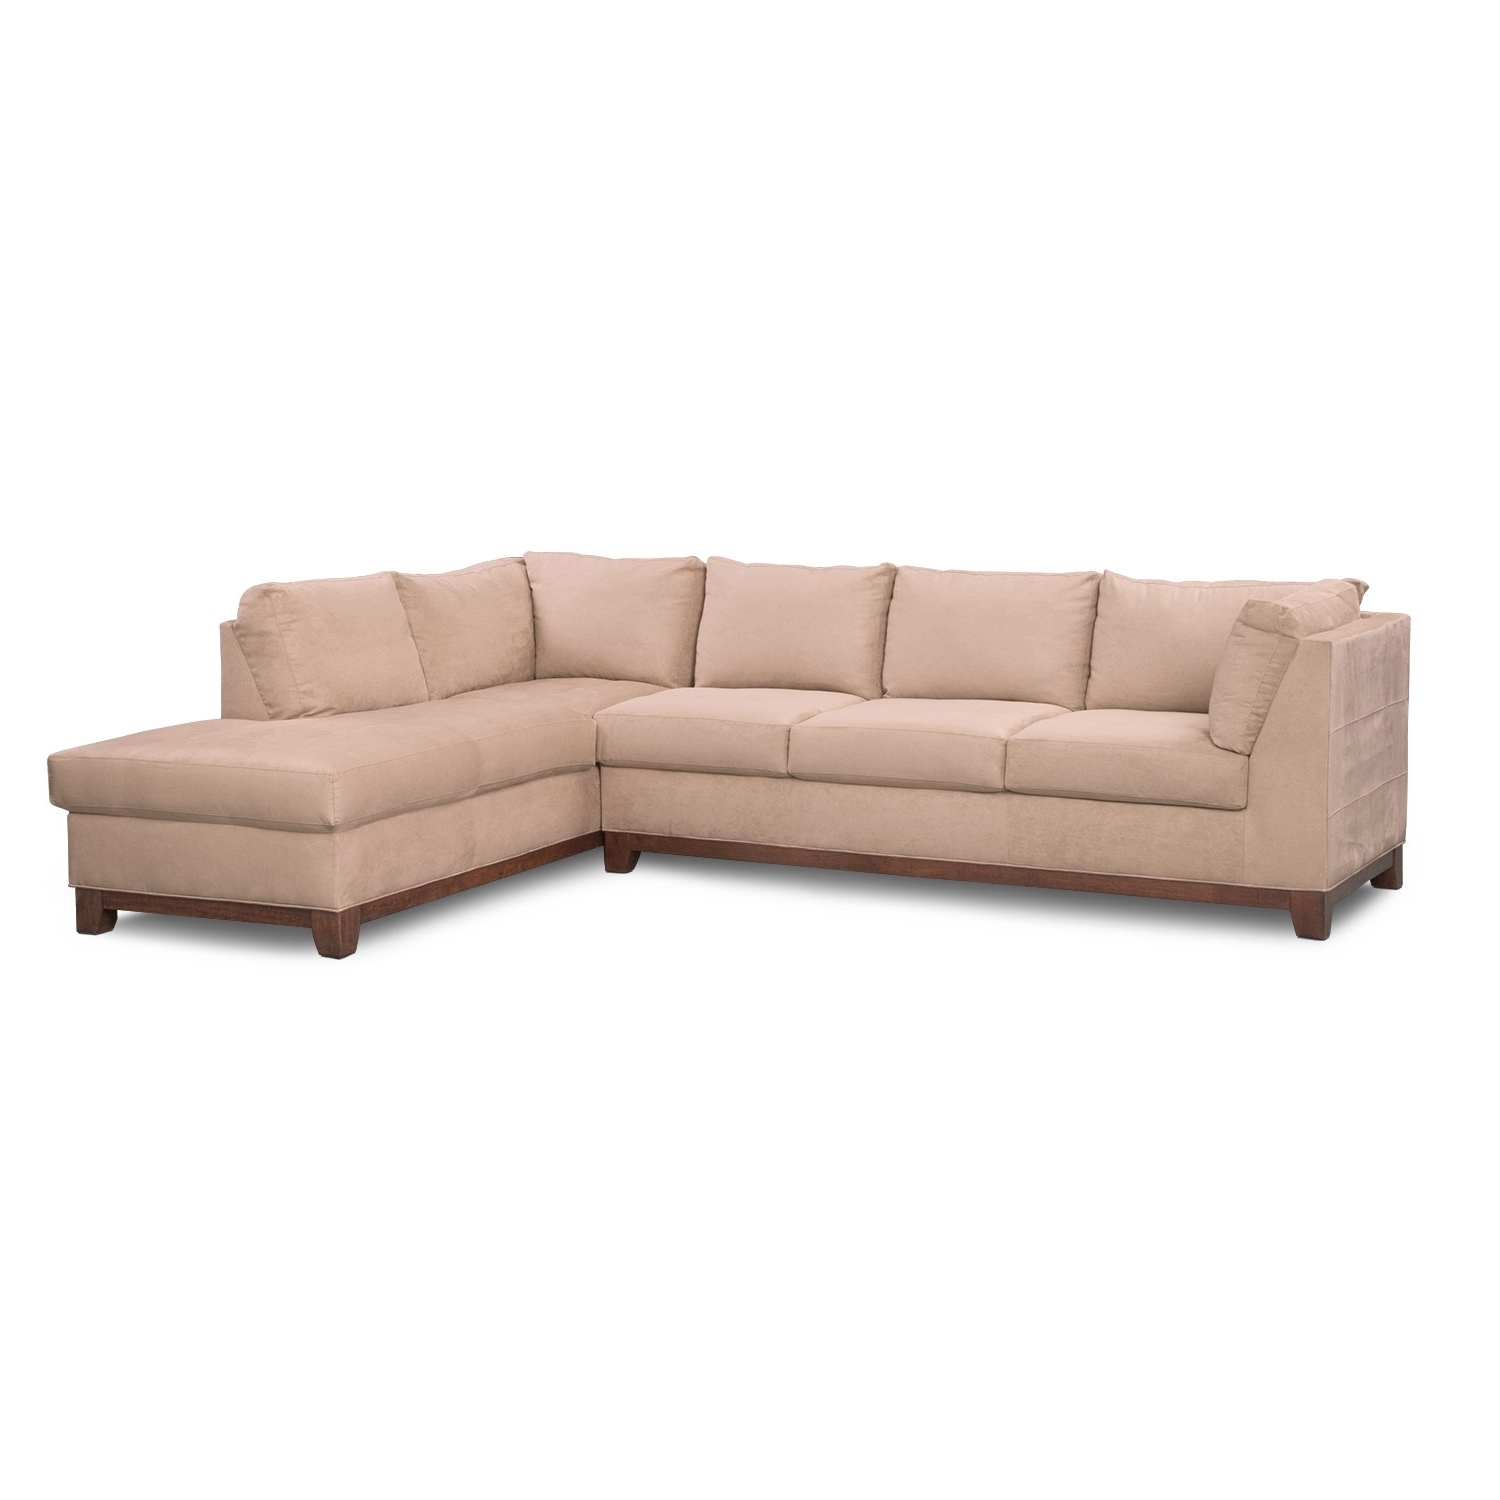 Recent Value City Sectional Sofas With Value City Sectional Sofa (View 9 of 15)